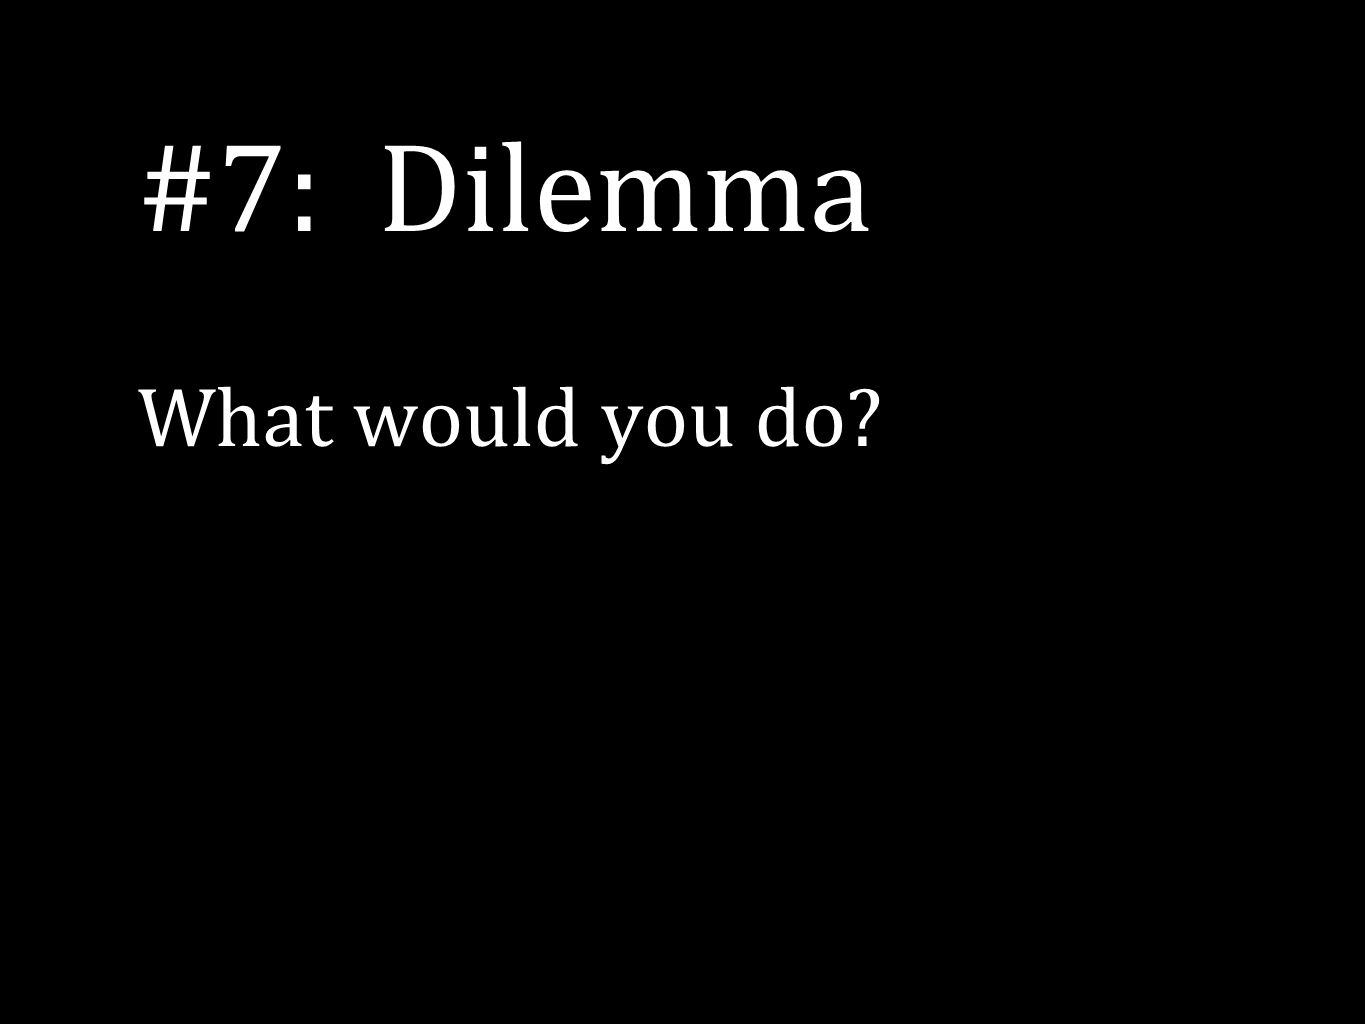 #7: Dilemma What would you do?